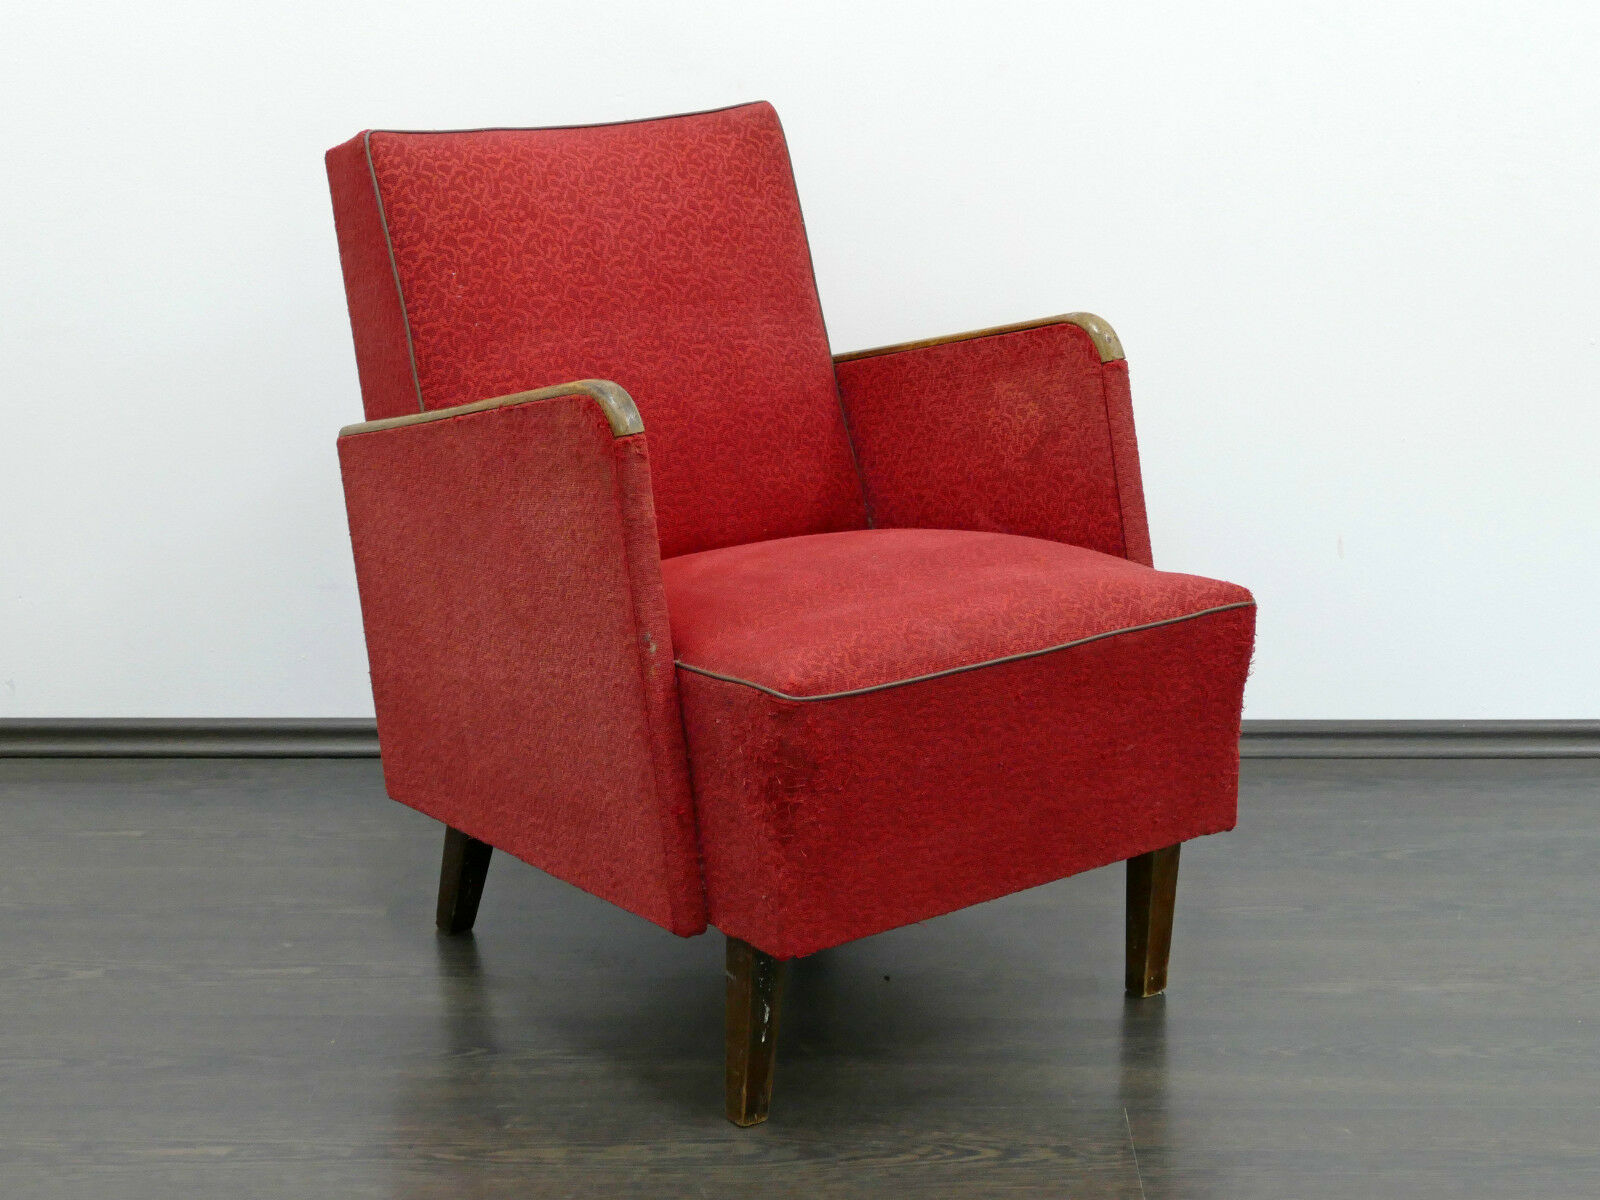 1 of 2 Vintage Retro MidCentury Art-Deco Style Armchair BESPOKE OPTION